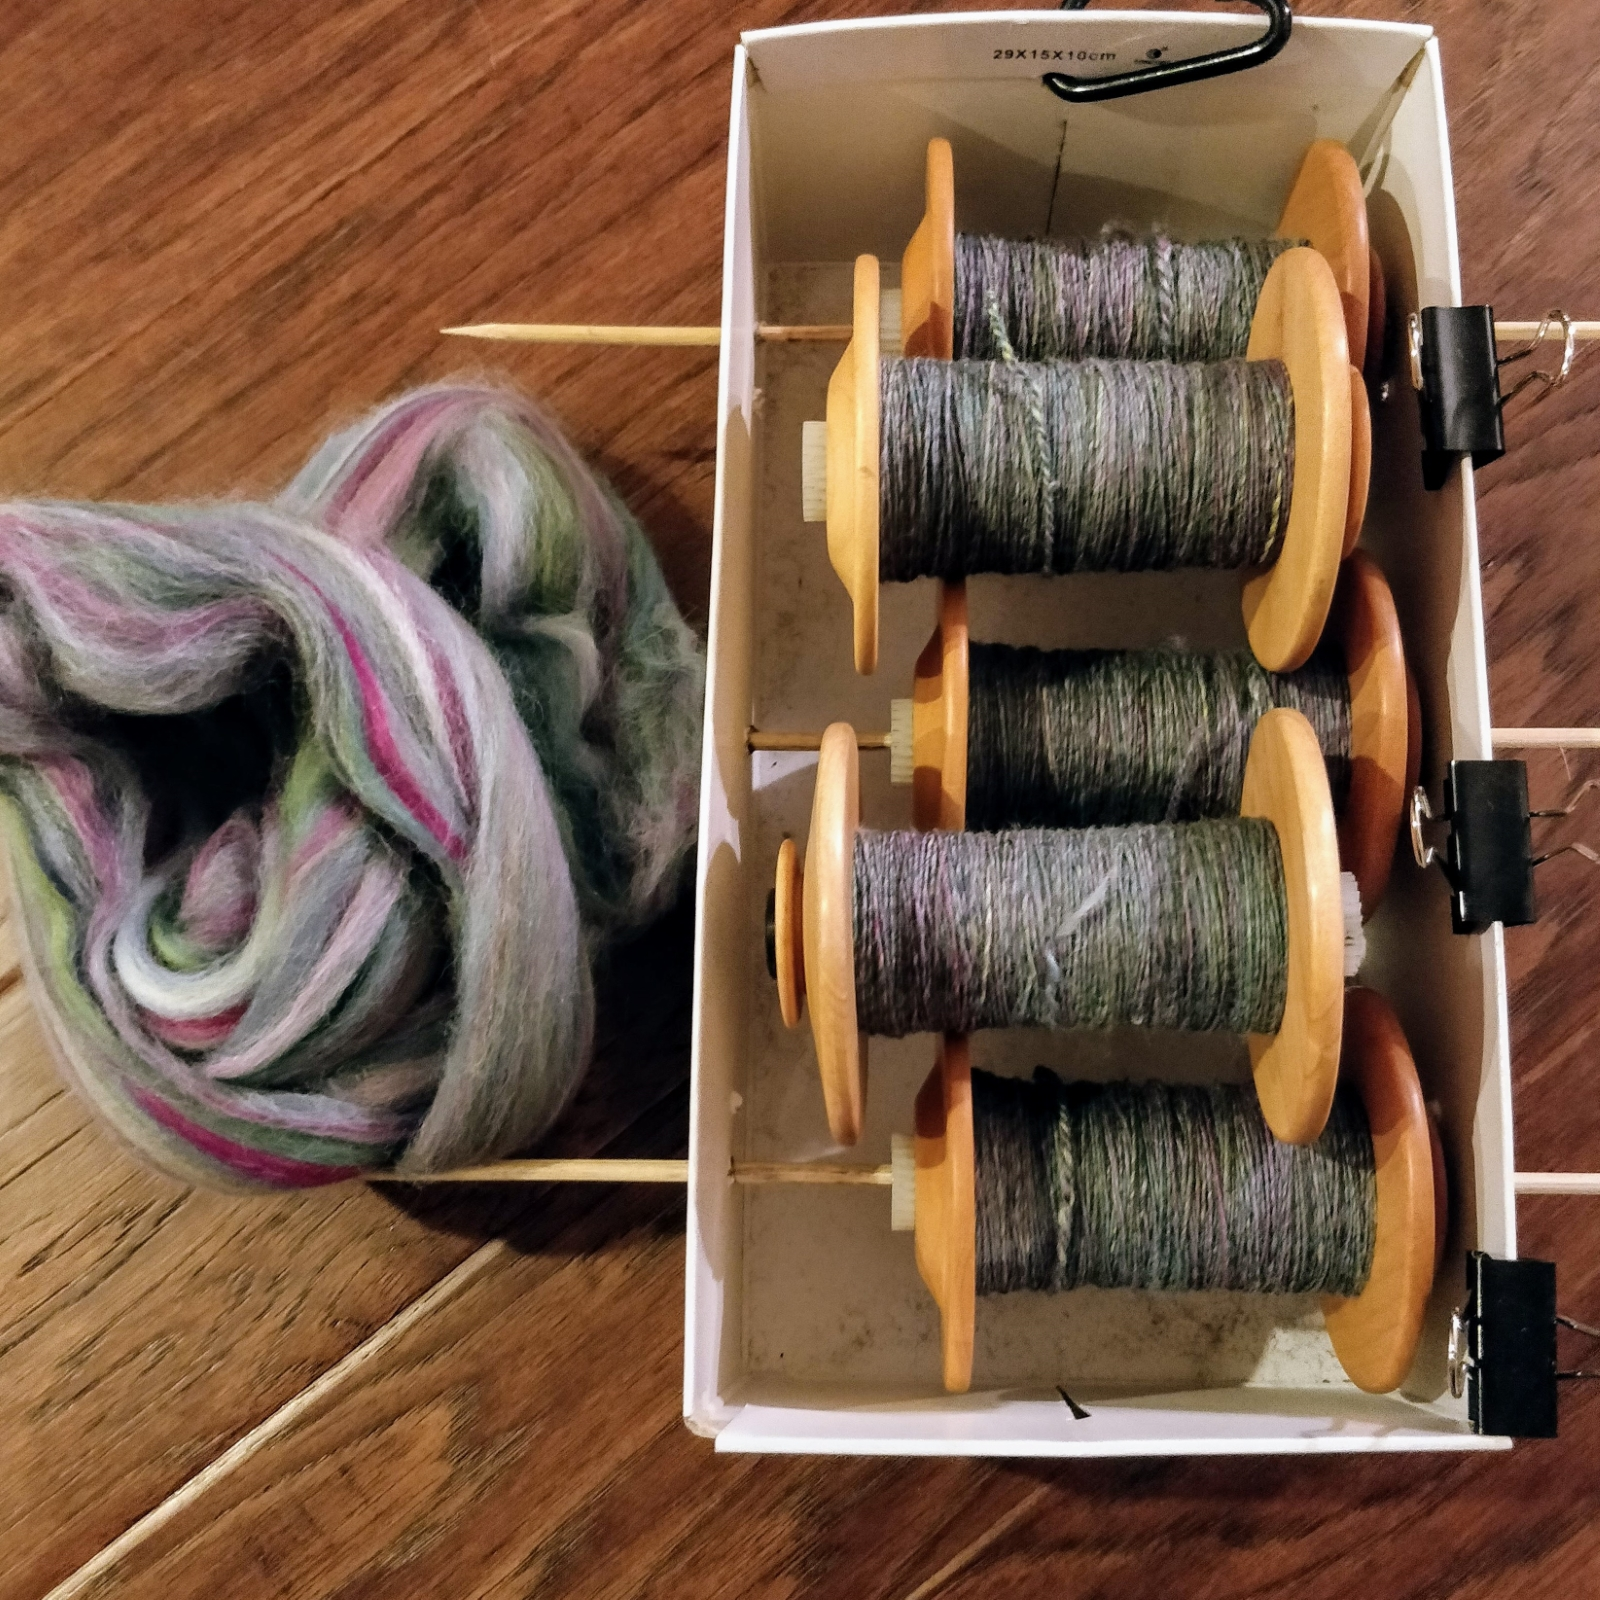 An unspun bit of multi-coloured spinning fibre sits on the floor next to a shoebox with several bobbins of spun singles.